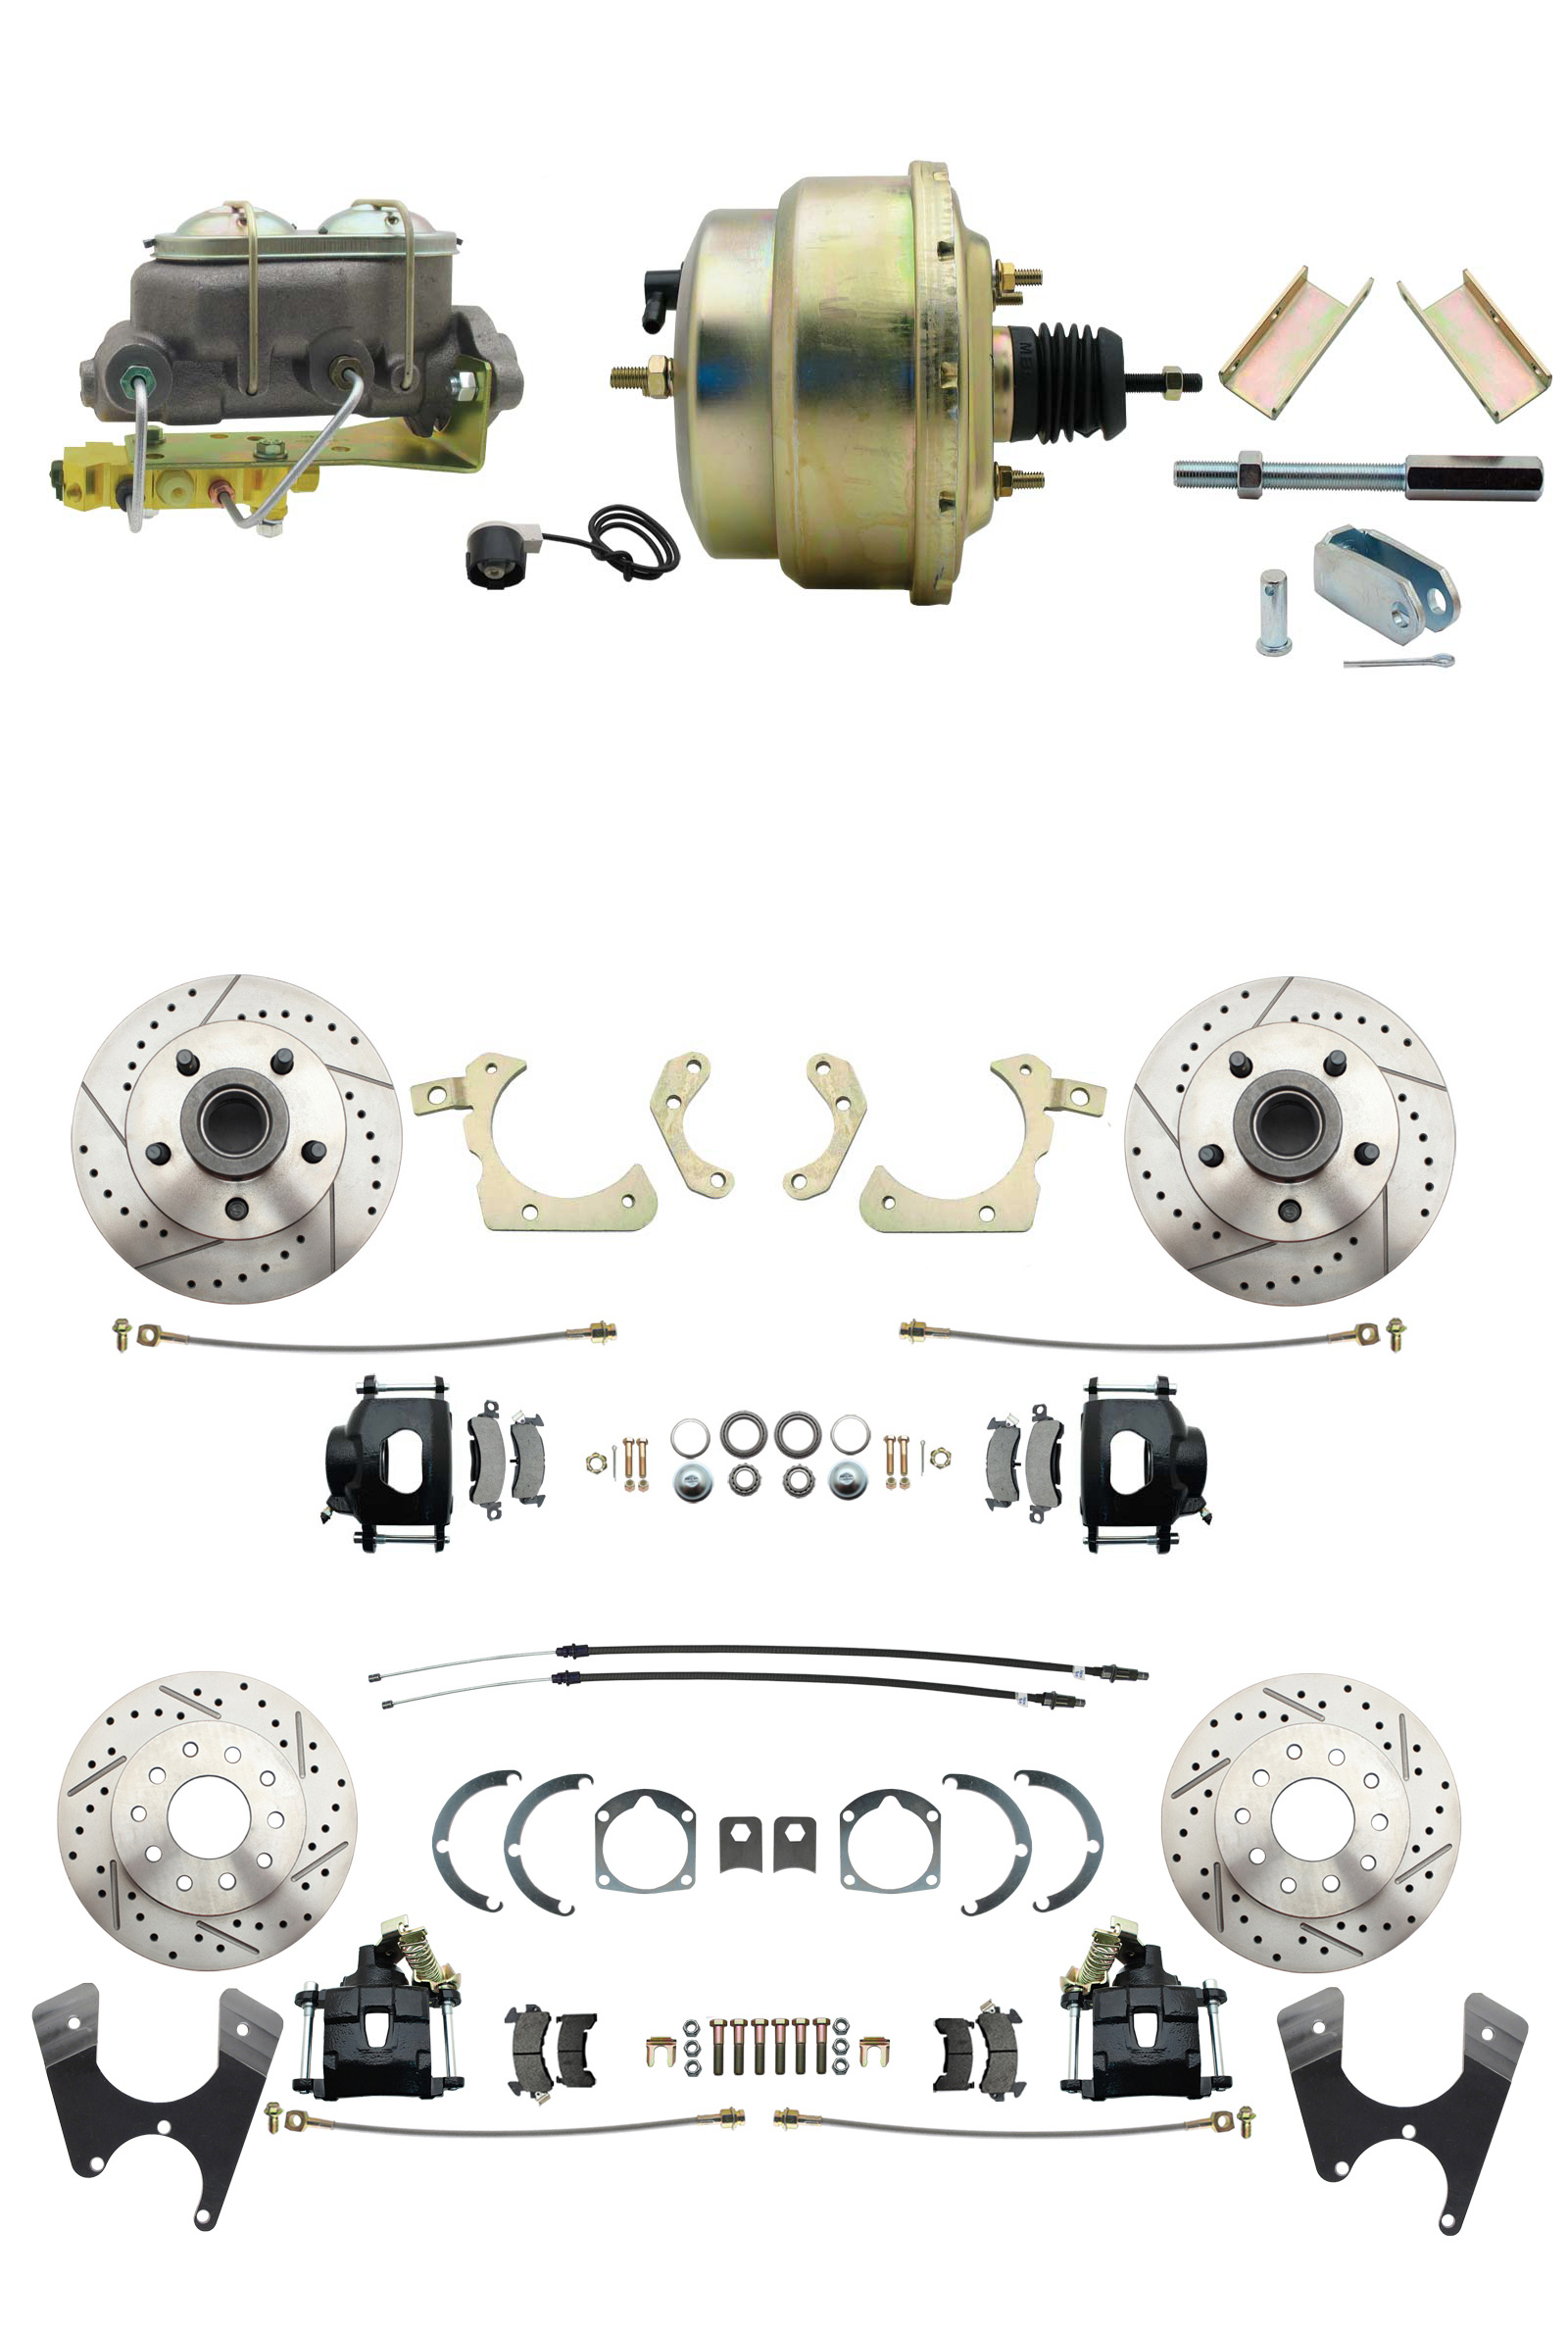 1955-1958 GM Full Size Front & Rear Power Disc Brake Kit Black Powder Coated Calipers Drilled/Slotted Rotors (Impala, Bel Air, Biscayne) & 8 Dual Zinc Booster Conversion Kit W/ Cast Iron Master Cylinder Bottom Mount Dis